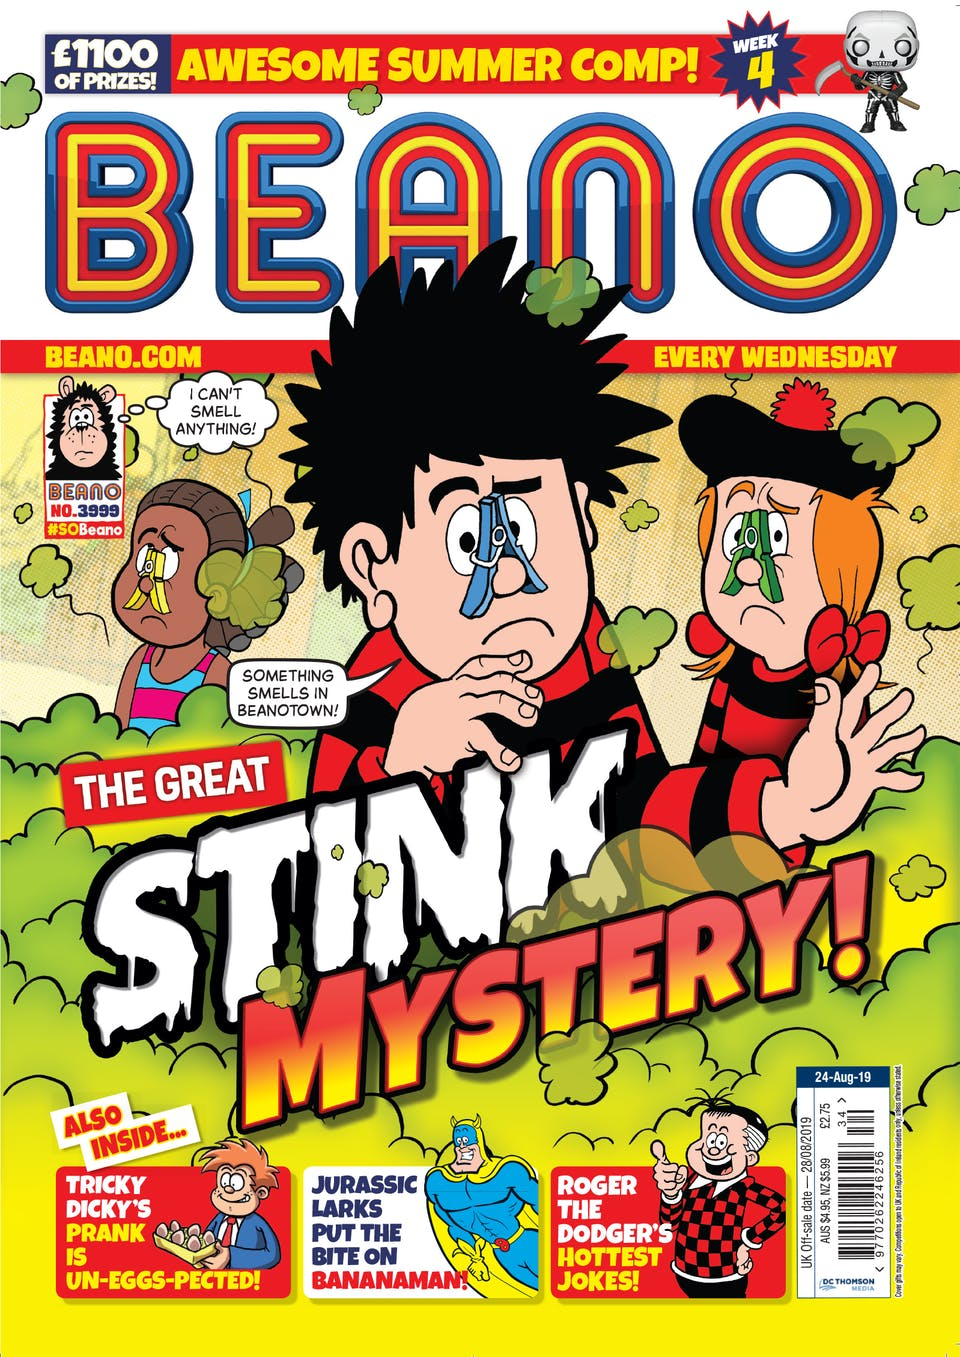 Inside Beano 3999 - The Great Stink Mystery